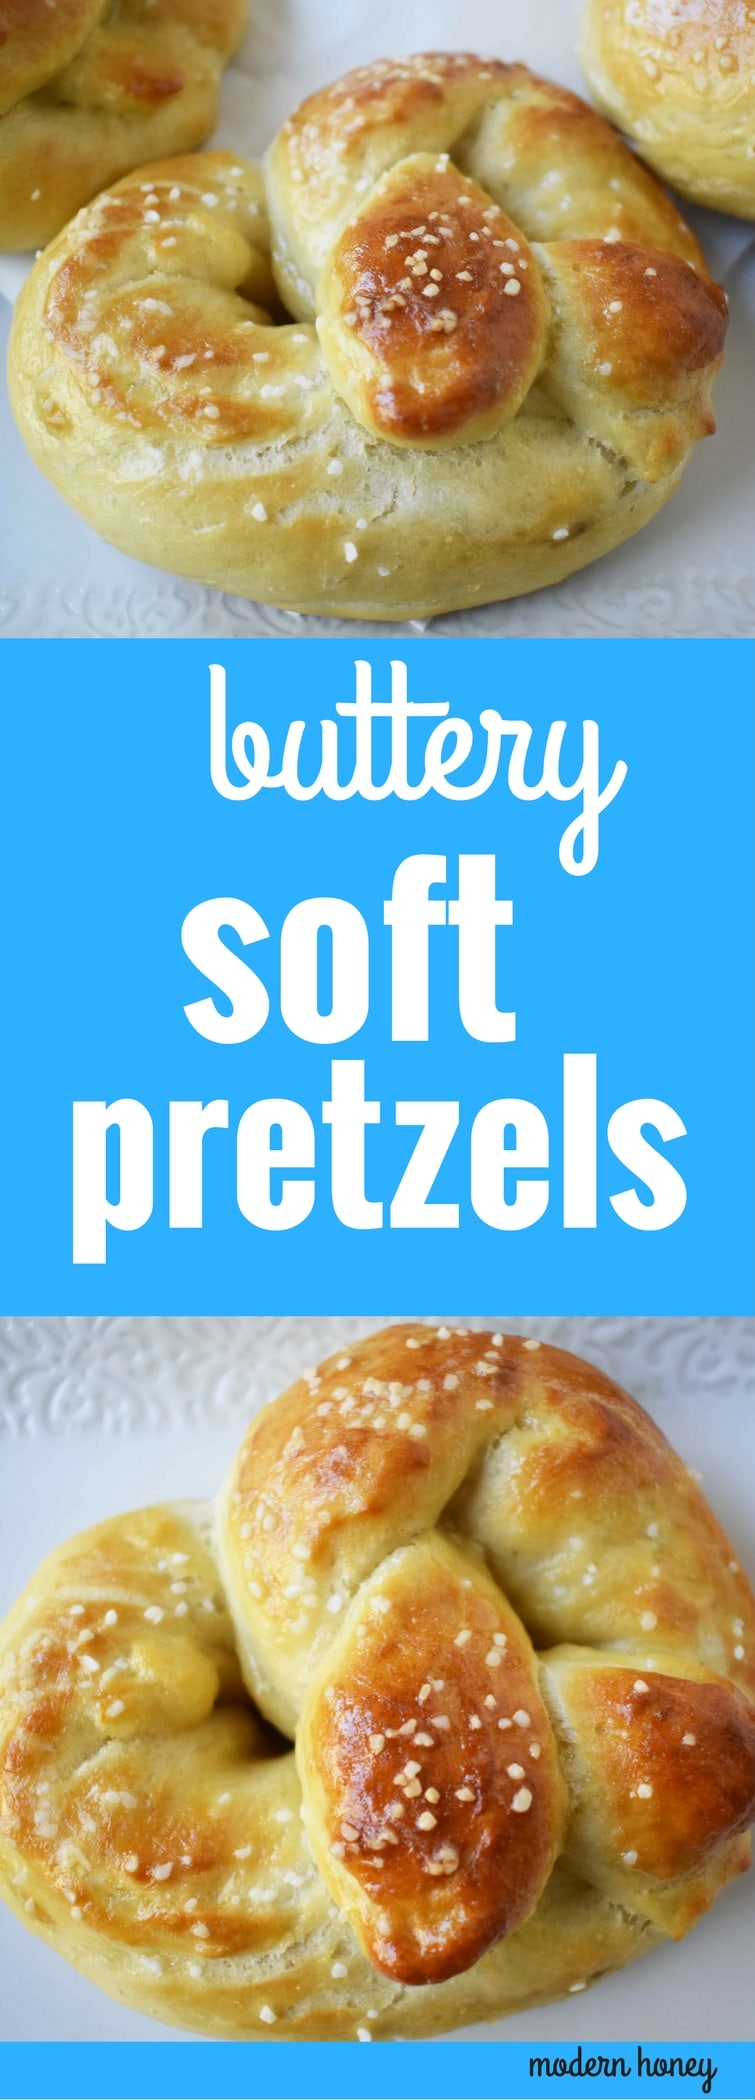 Buttery Soft Pretzels. Homemade, made from scratch soft pretzels. Buttery, soft, and fluffy pretzels with melted butter and coarse salt. Super easy to make! www.modernhoney.com